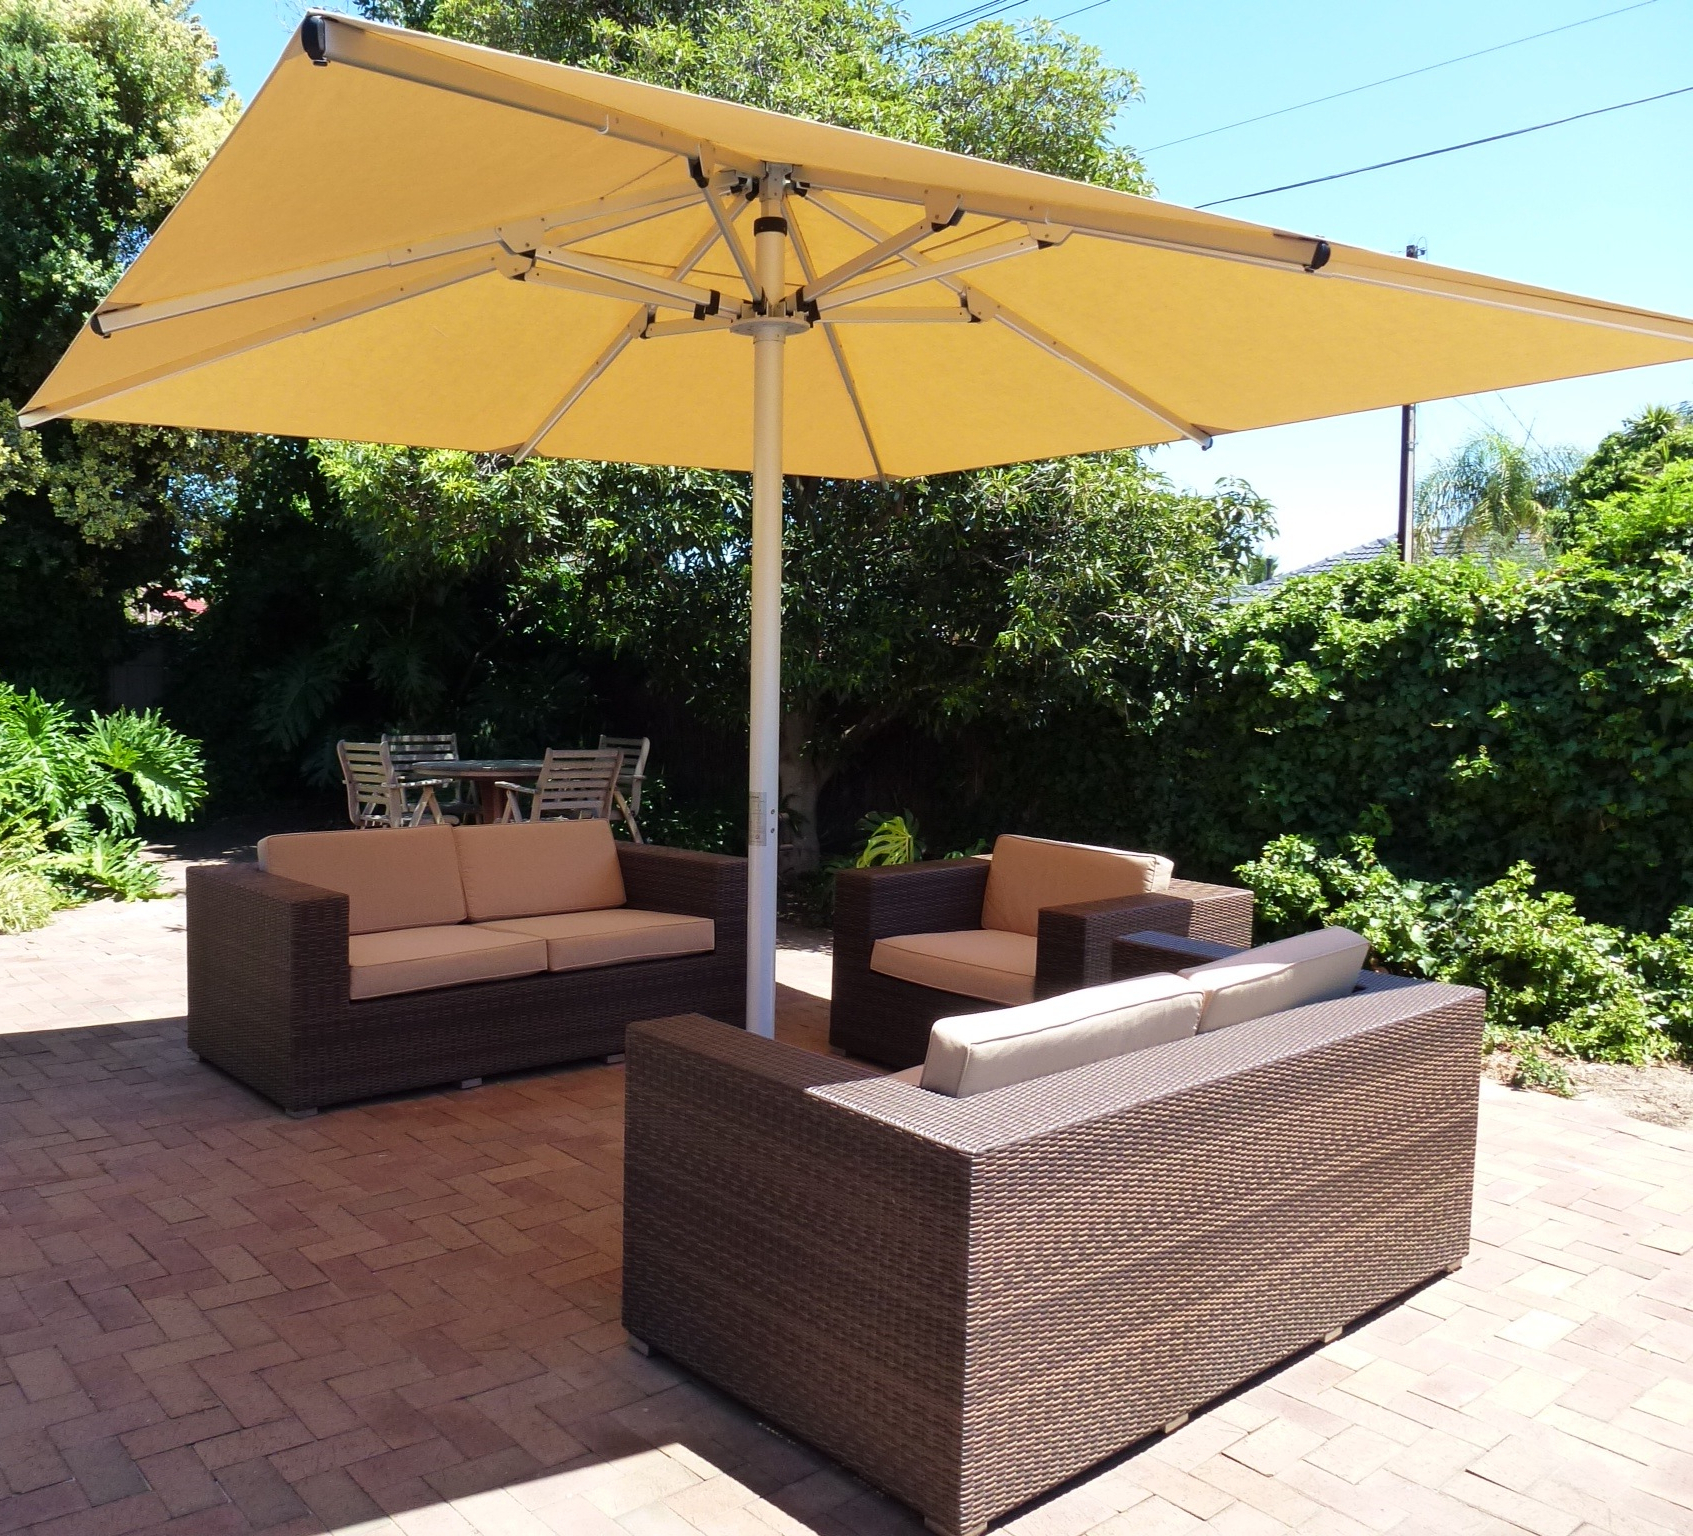 Mald Square Cantilever Umbrellas Within Fashionable Stay Cool With Outdoor Umbrellas (Gallery 8 of 20)